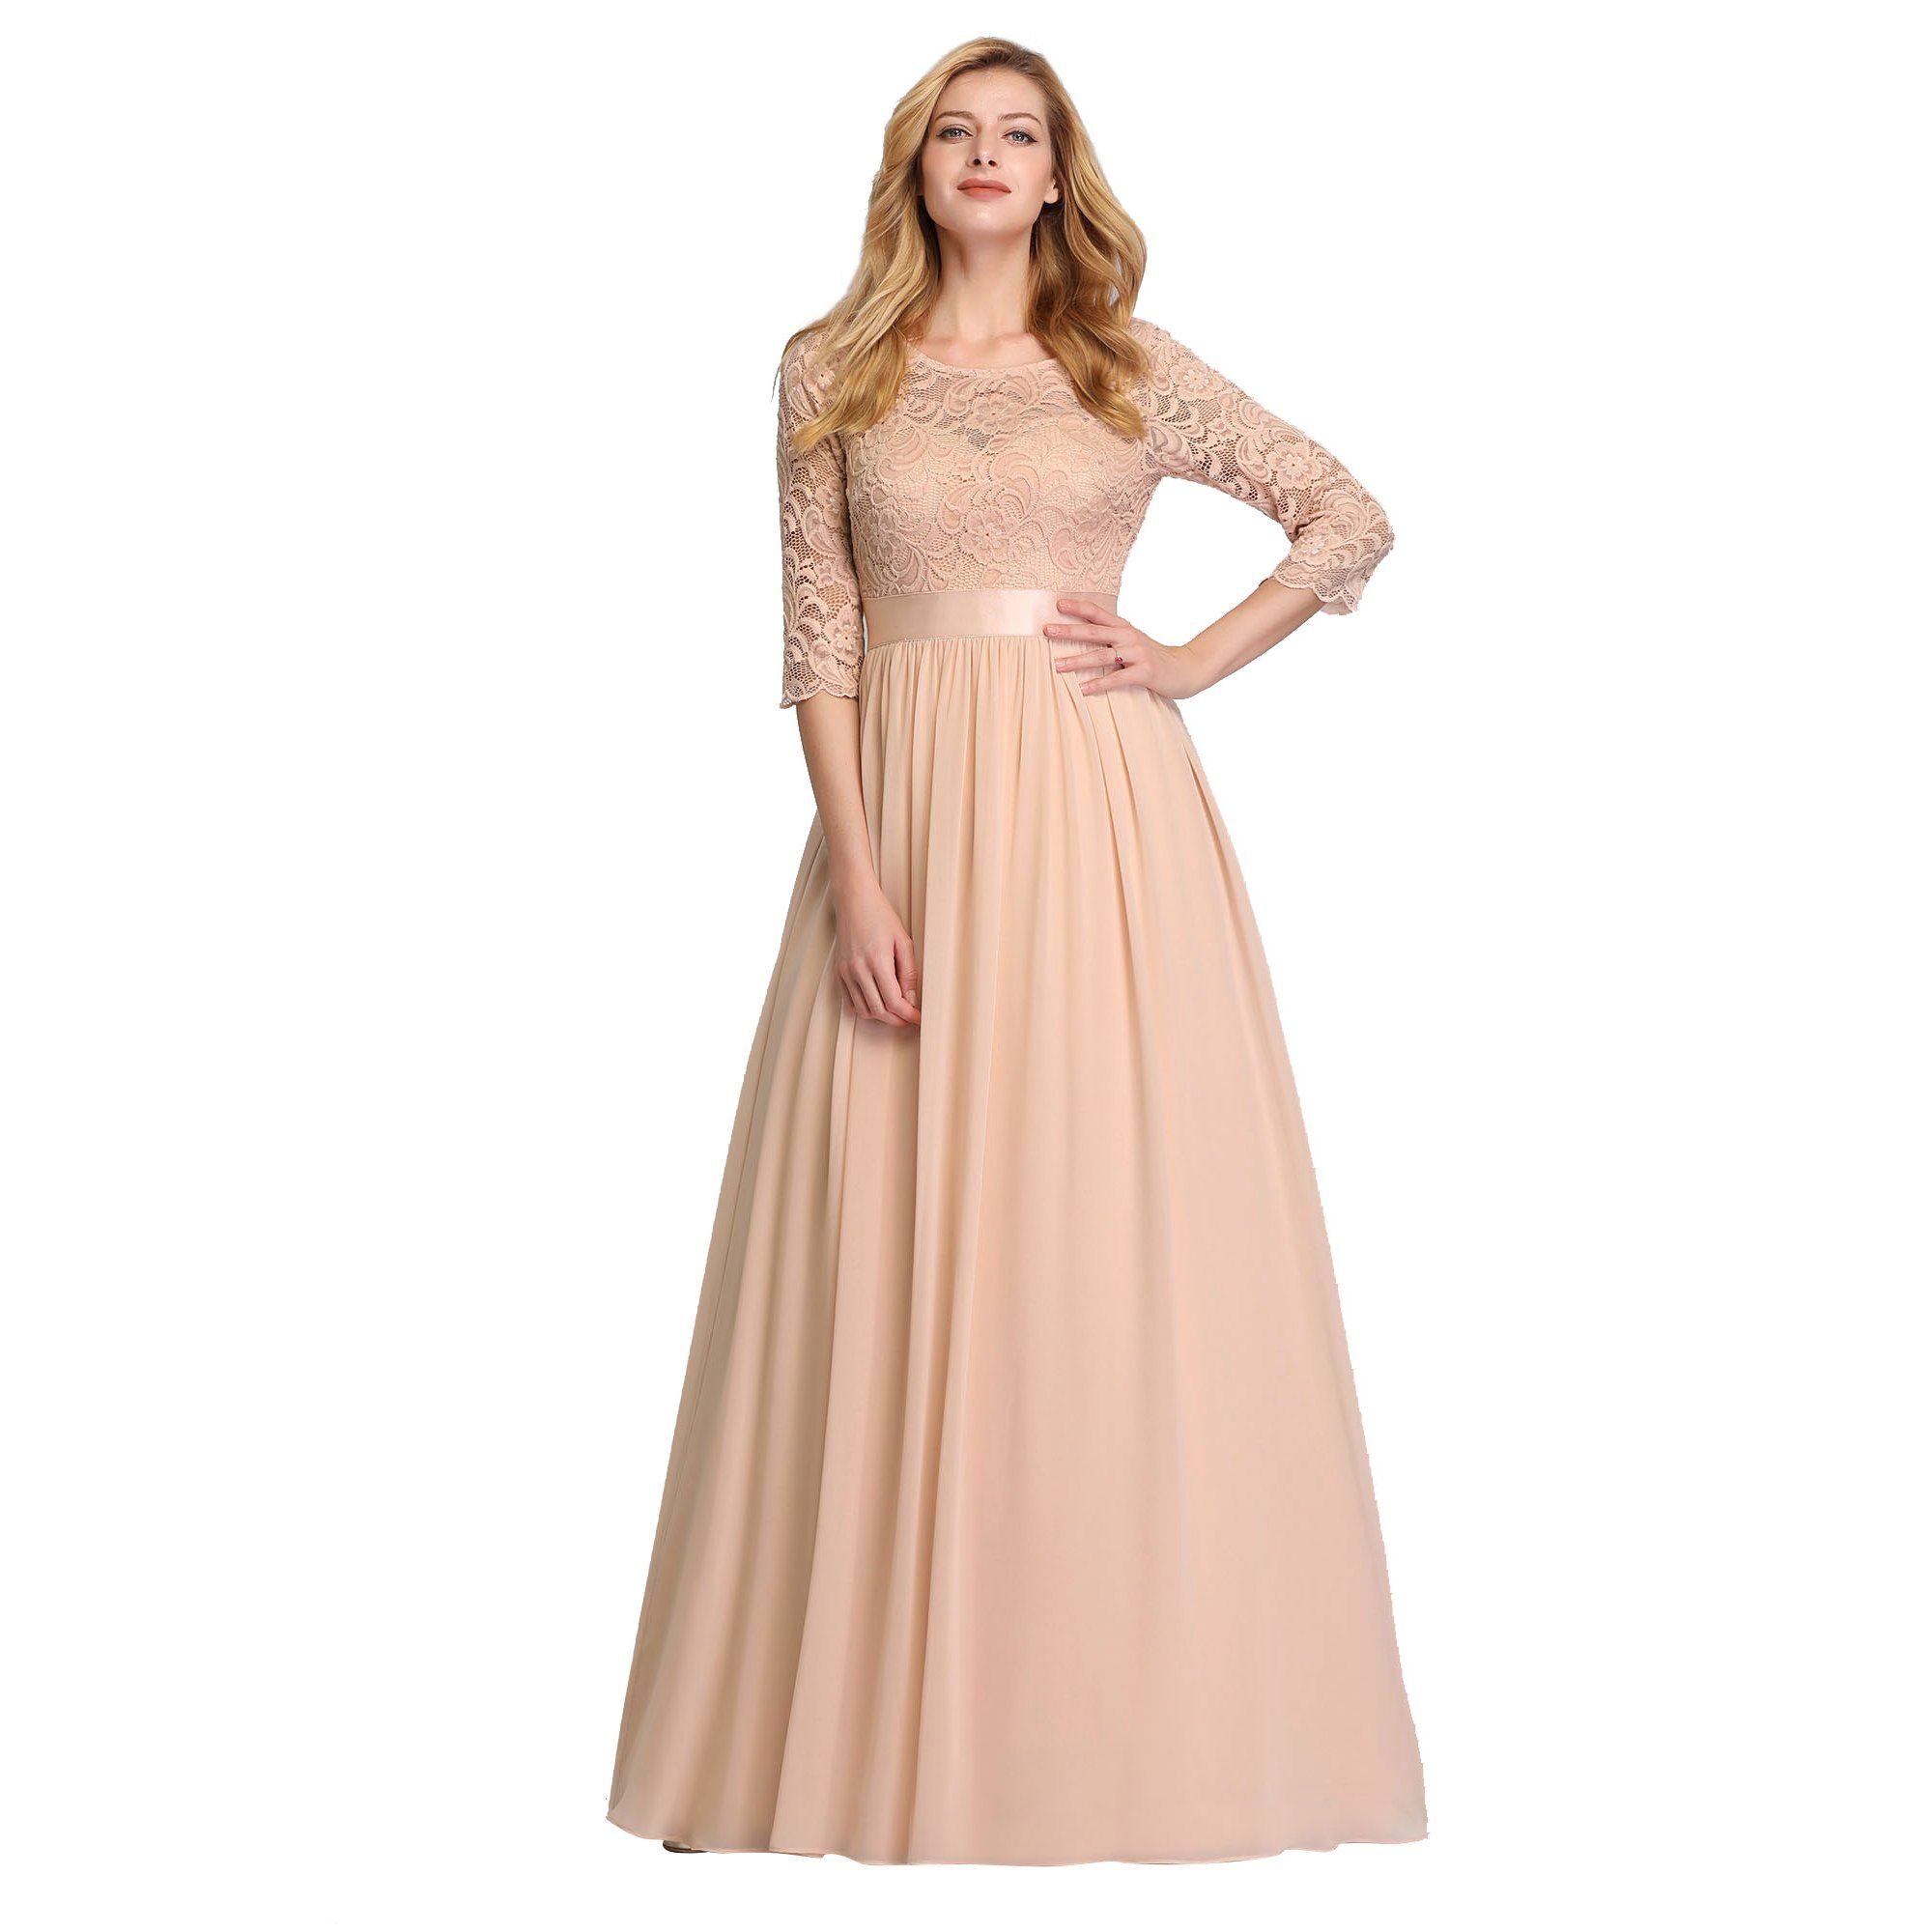 Ever Pretty Ever Pretty Women S Elegant Long Fit And Flare Sheer Lace Summer Beach Wedding Guest Bridesmaid Maxi Dresses For Women 07412 Burgundy Us8 Walmar In 2021 Lace Bridesmaid Dresses Maxi [ 2000 x 2000 Pixel ]